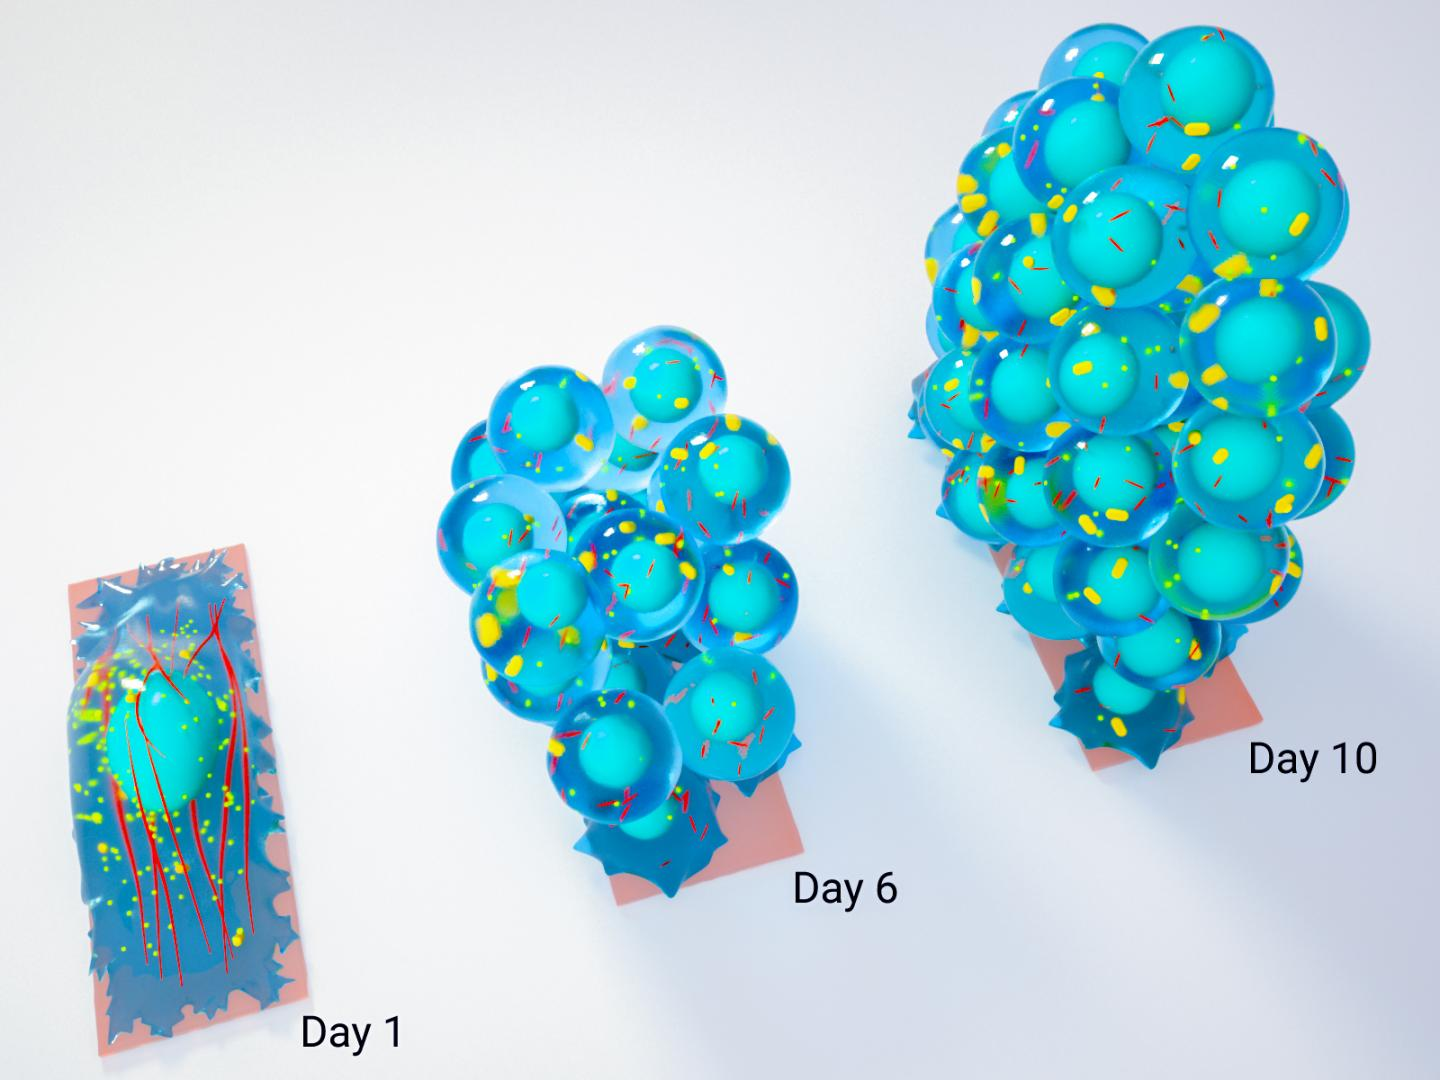 A schematic showing the growth of a spherical cluster of stem cells from a mature cell on a confined substrate. / Credit: Mechanobiology Institute